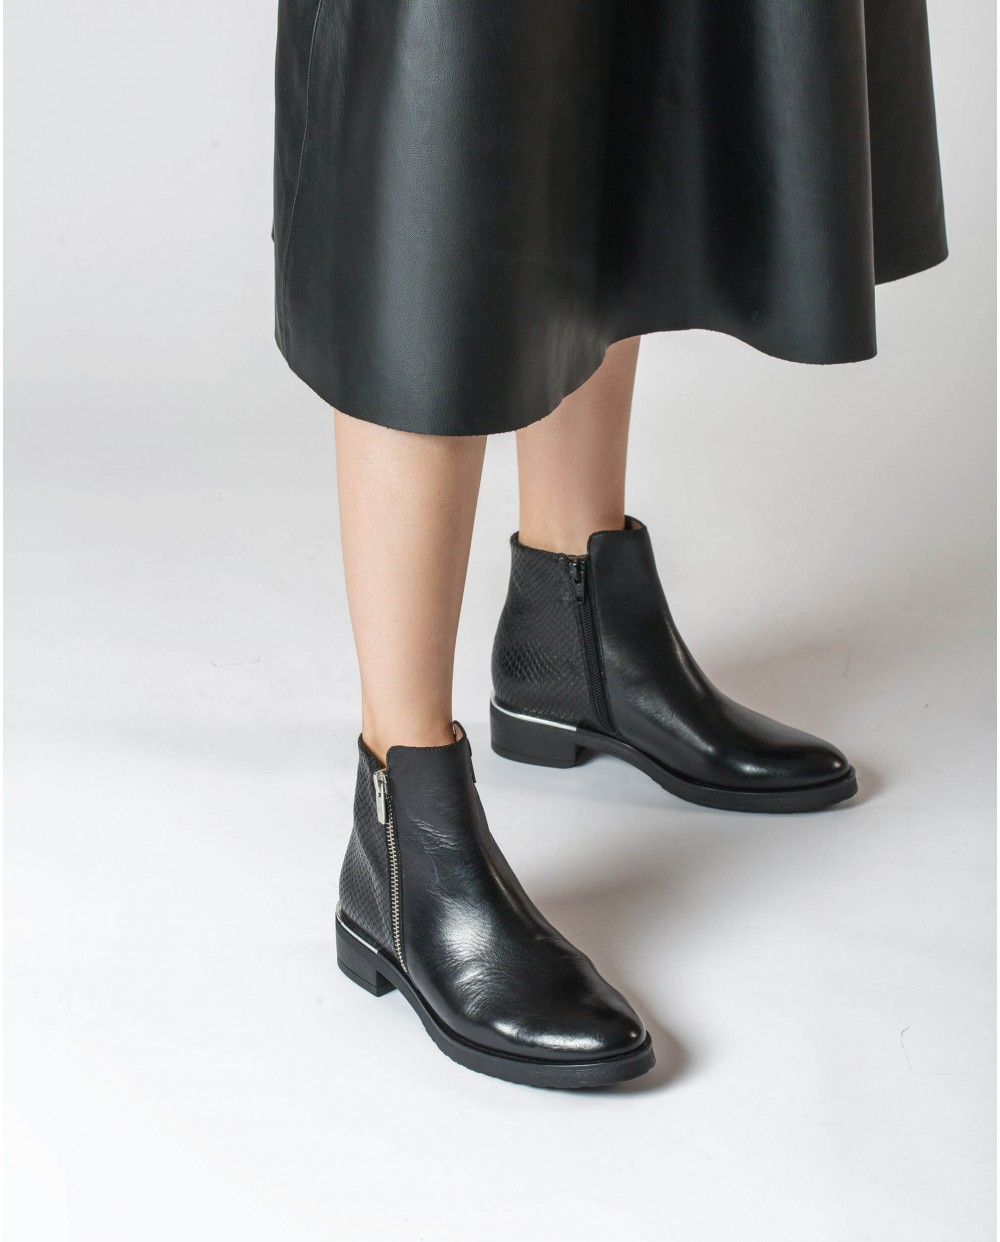 Wonders-Ankle Boots-Contrast leather ankle boot with zip